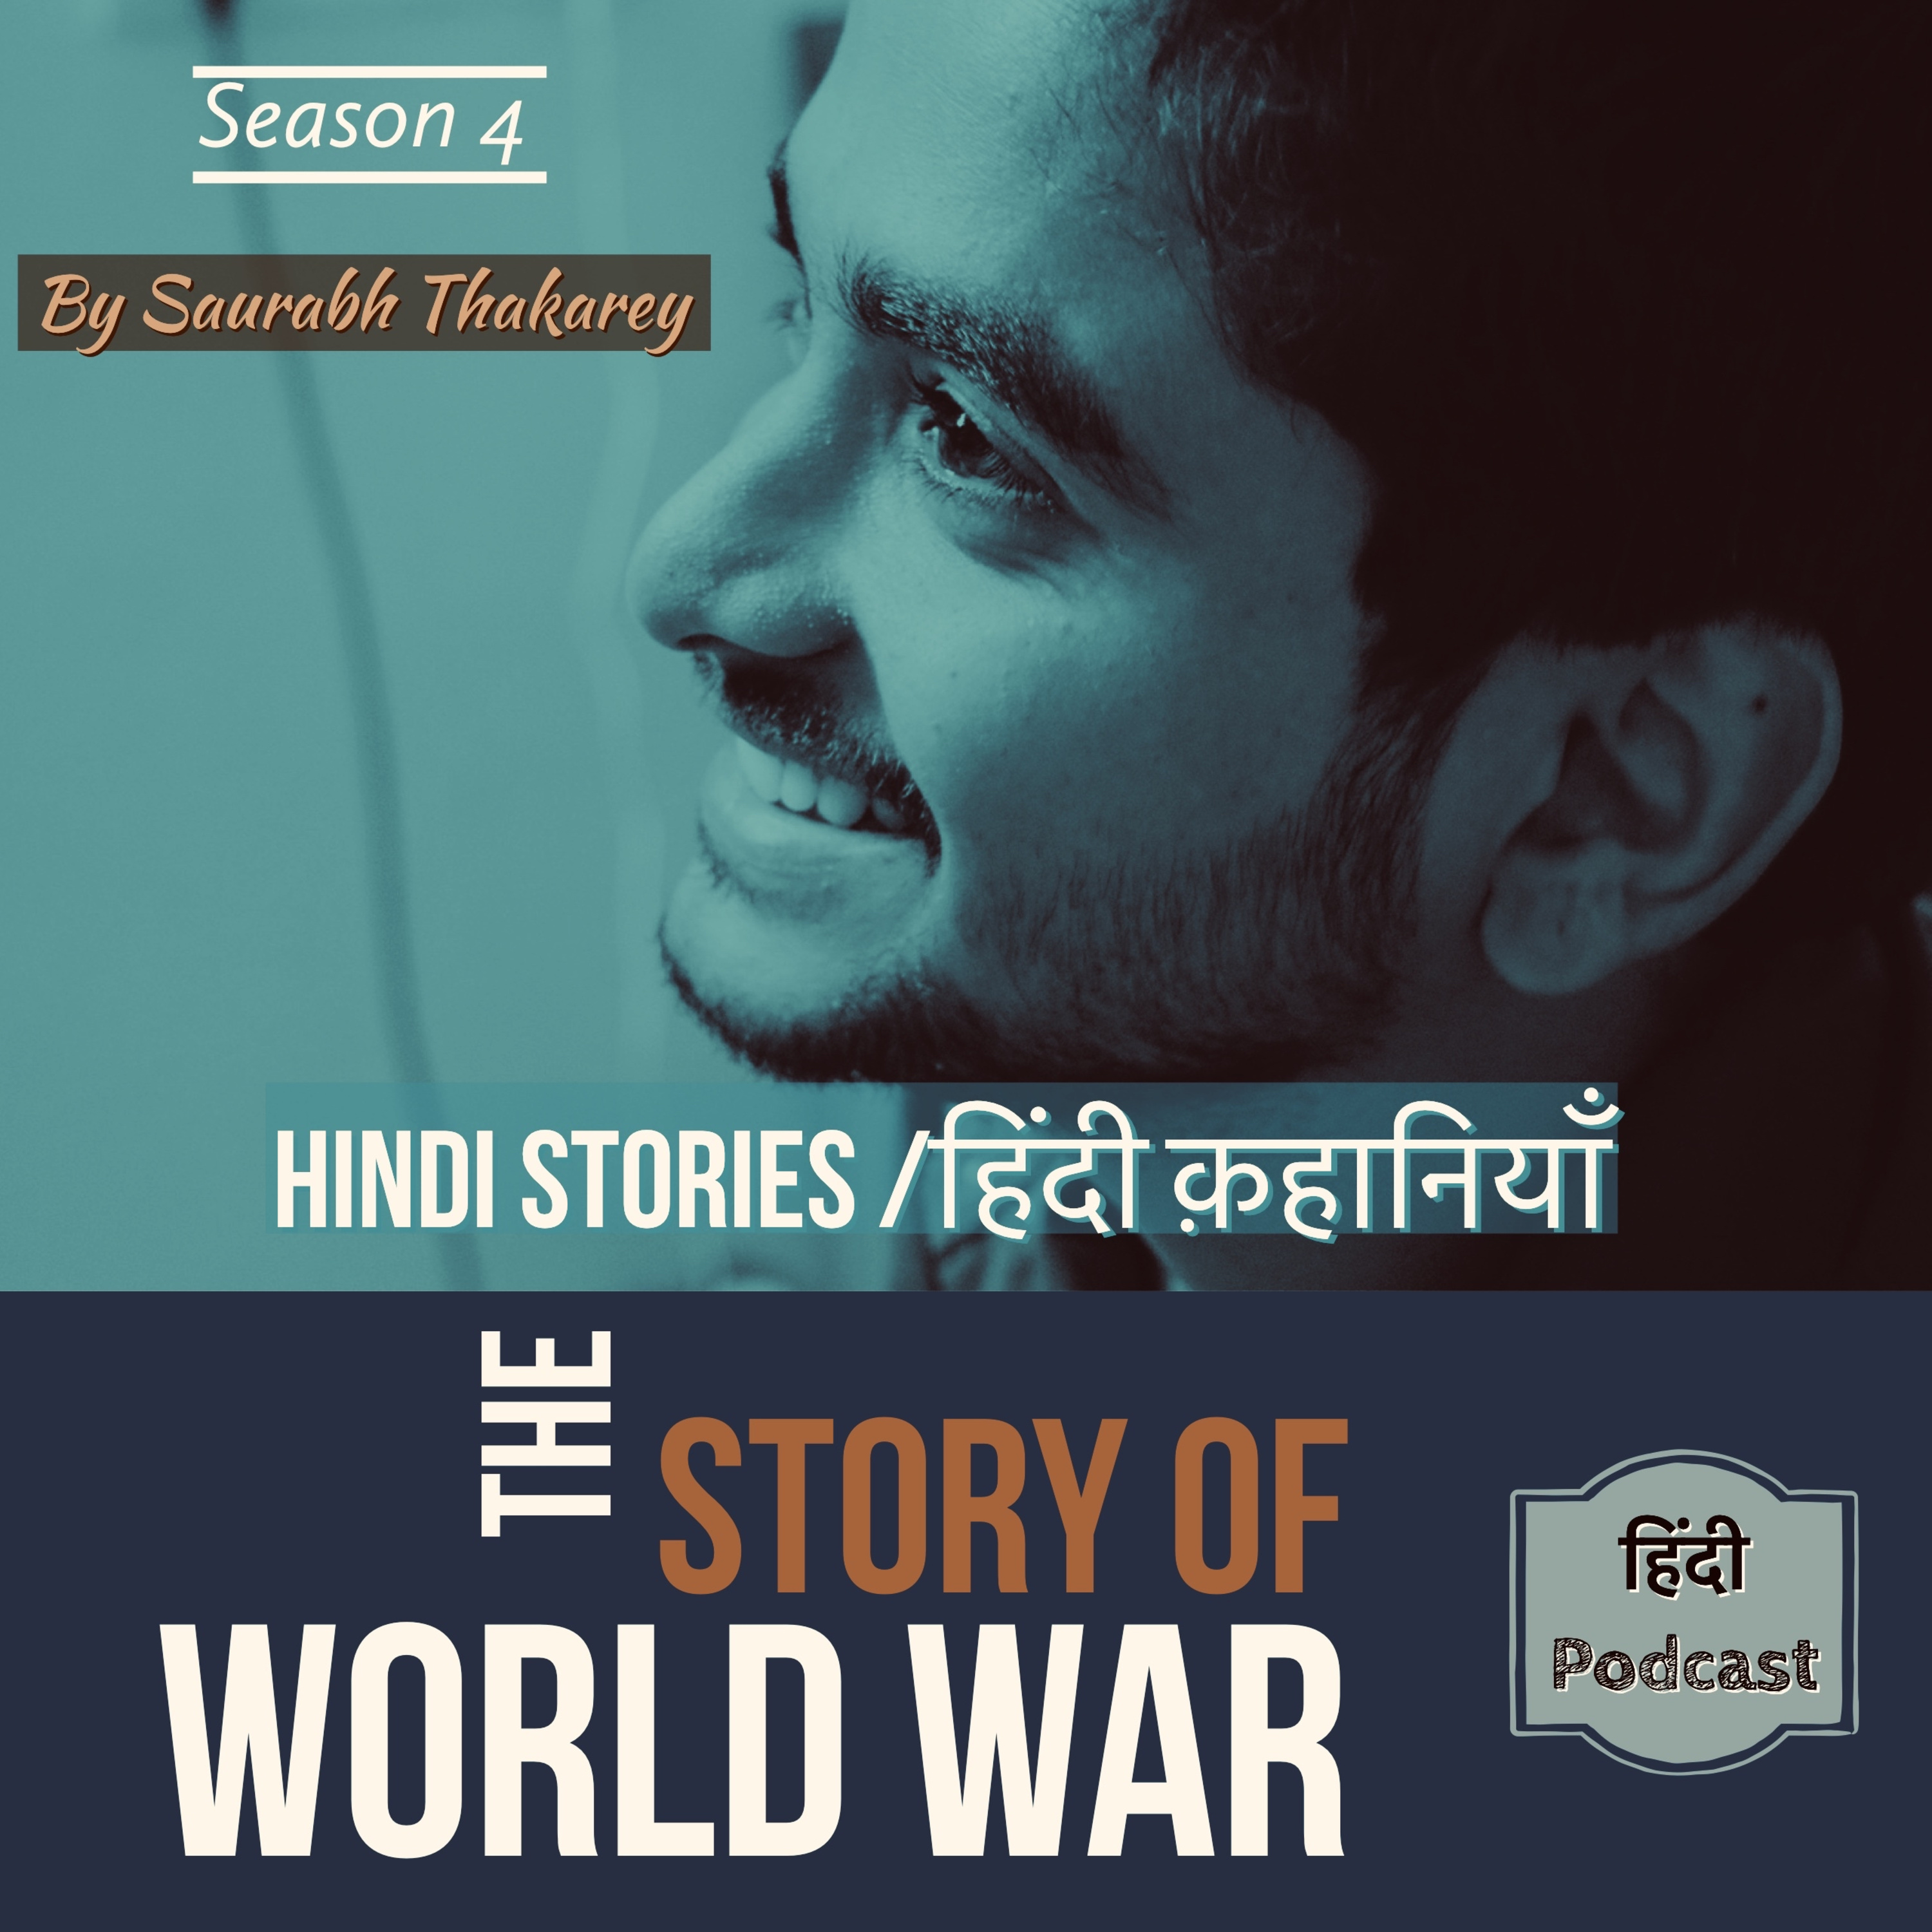 #33 WORLD WAR | Ep. 12 Endgame | युद्ध विराम | विश्व युद्ध १